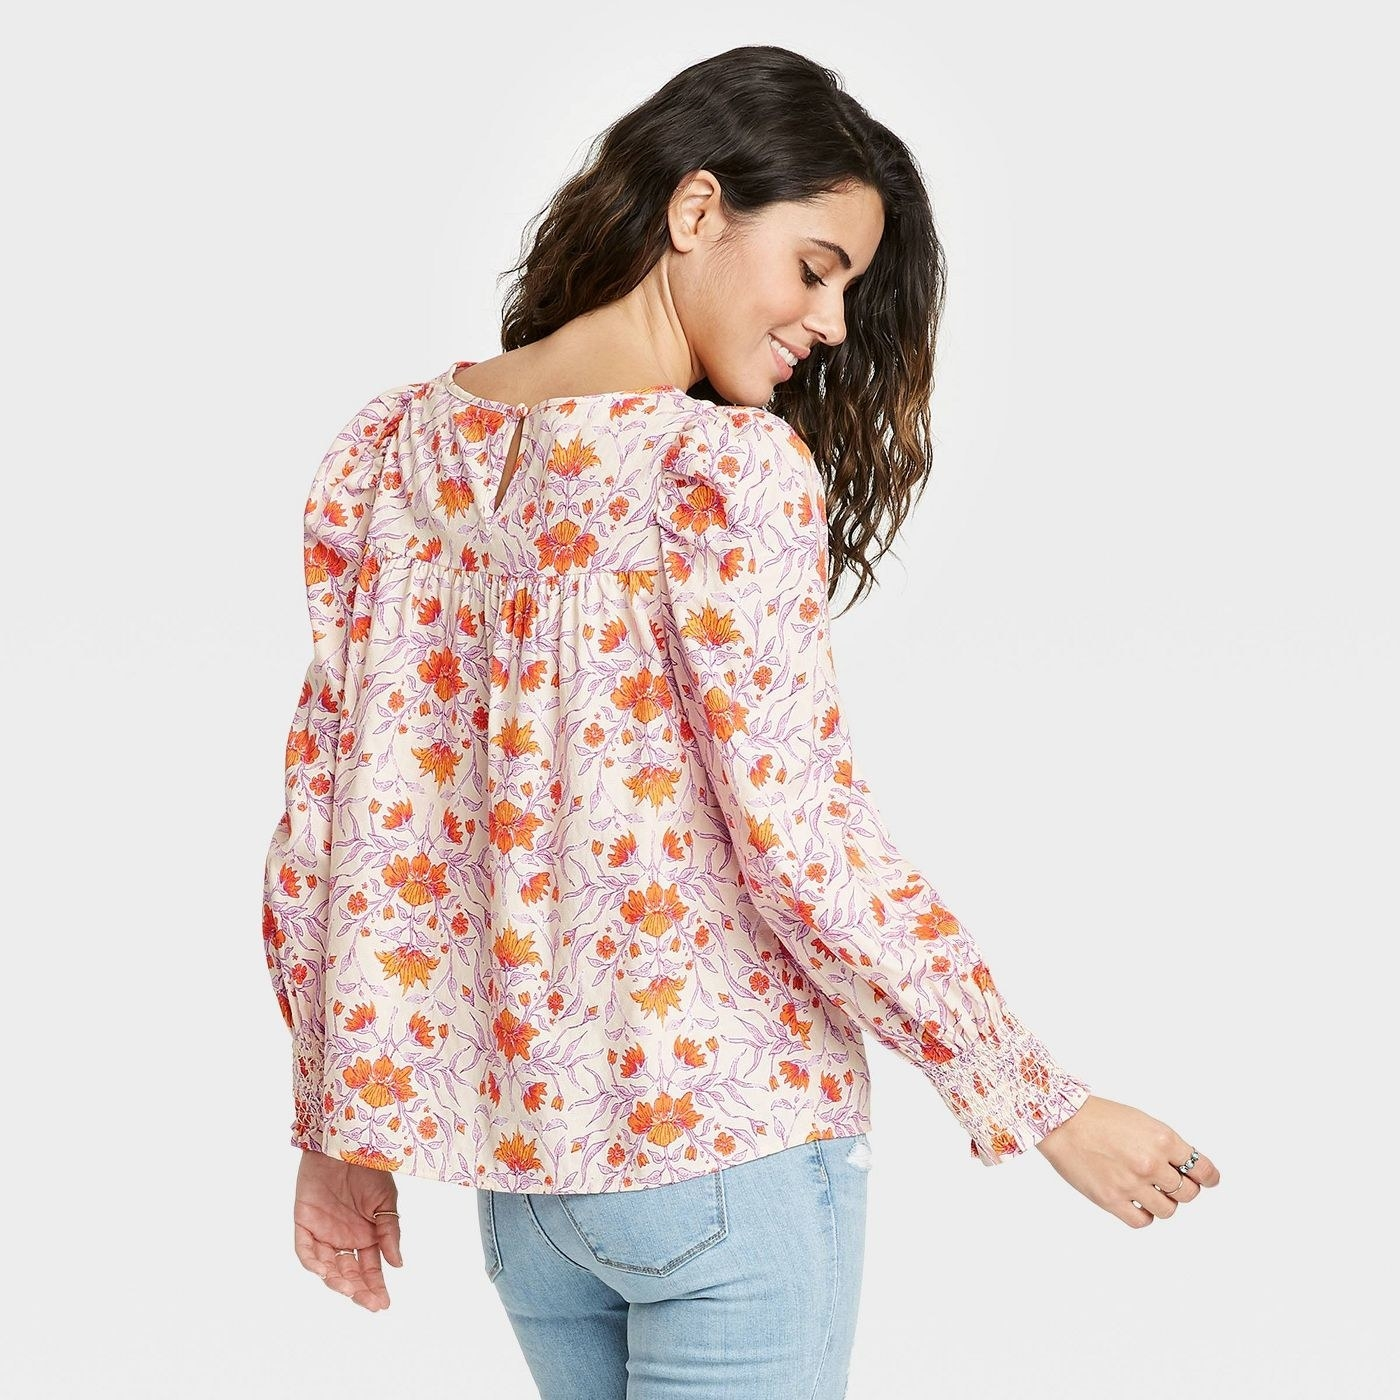 Model wearing white blouse with orange floral print, and lilac pattern